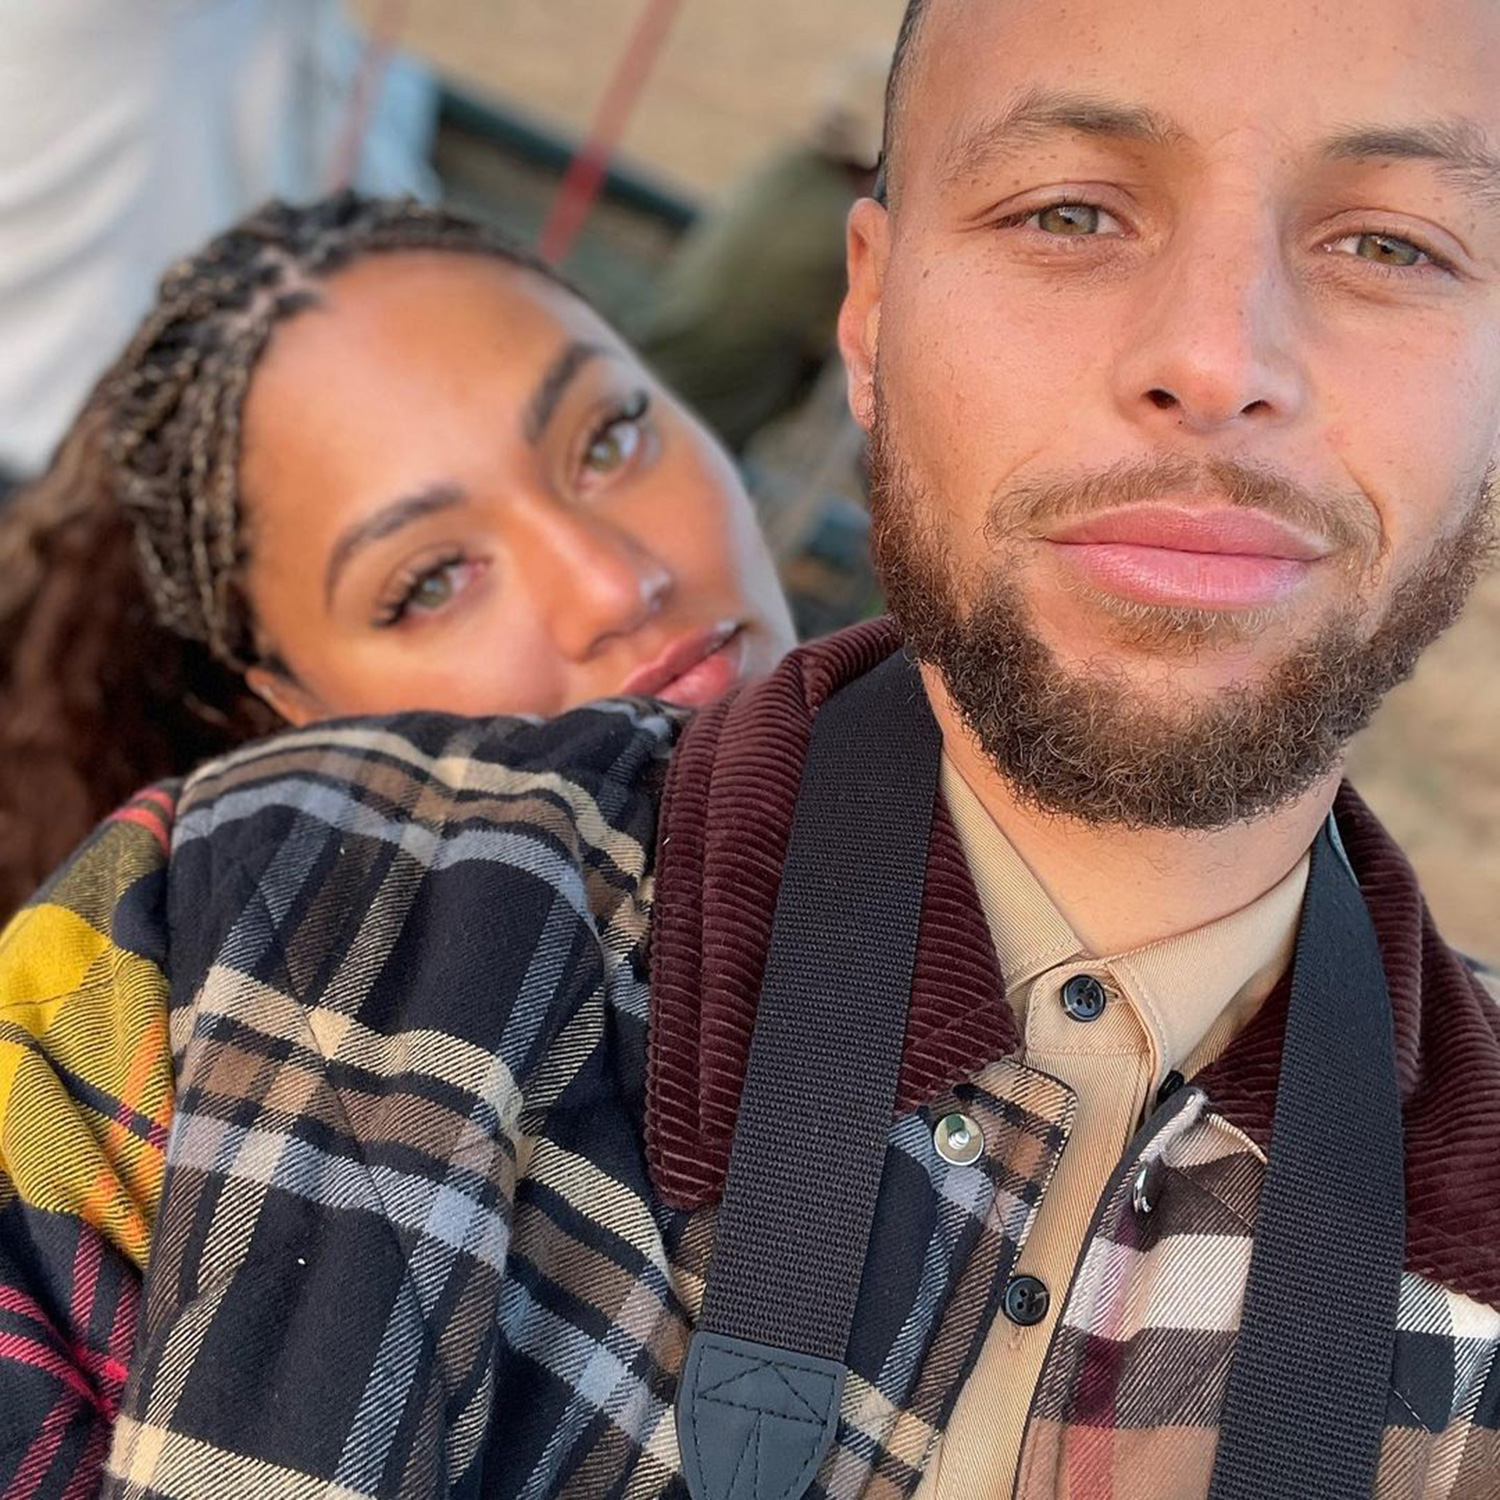 To Celebrate10 Years of Marriage Stephen Curry Surprised Wife Ayesha Curry with Vow Renewal